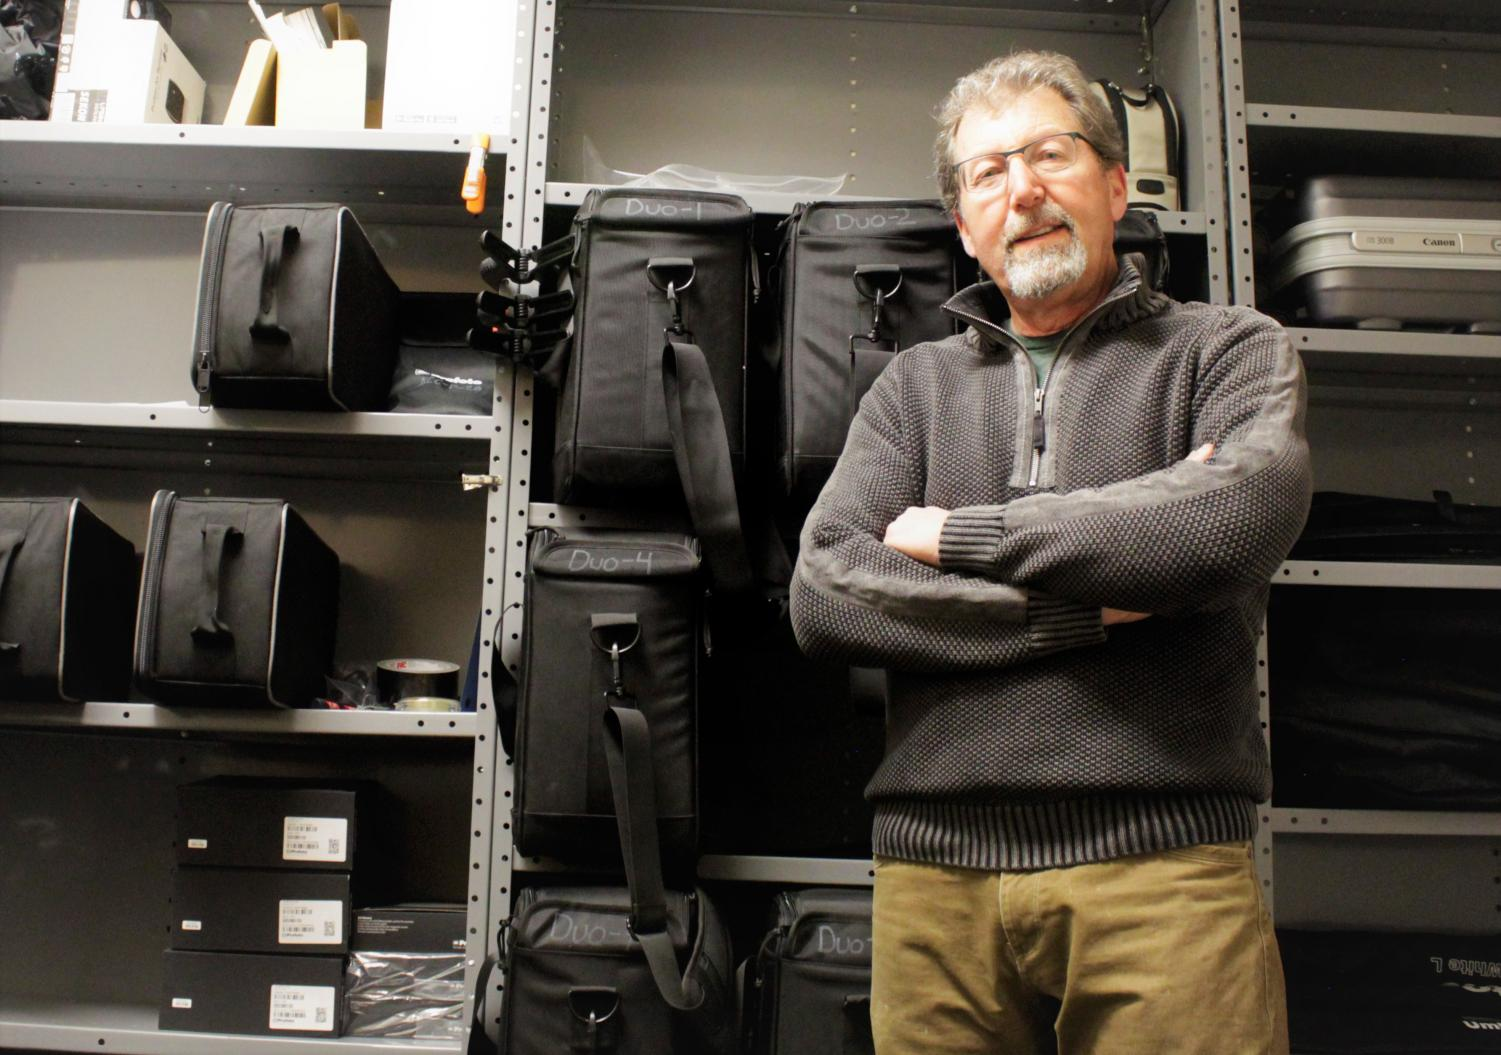 Brad Bartholomew, Head of the photography department at Arapahoe Community College displaying his vast array of camera equipment in the storage closet of the Arts and Design photography building on Feb. 19th 2019.